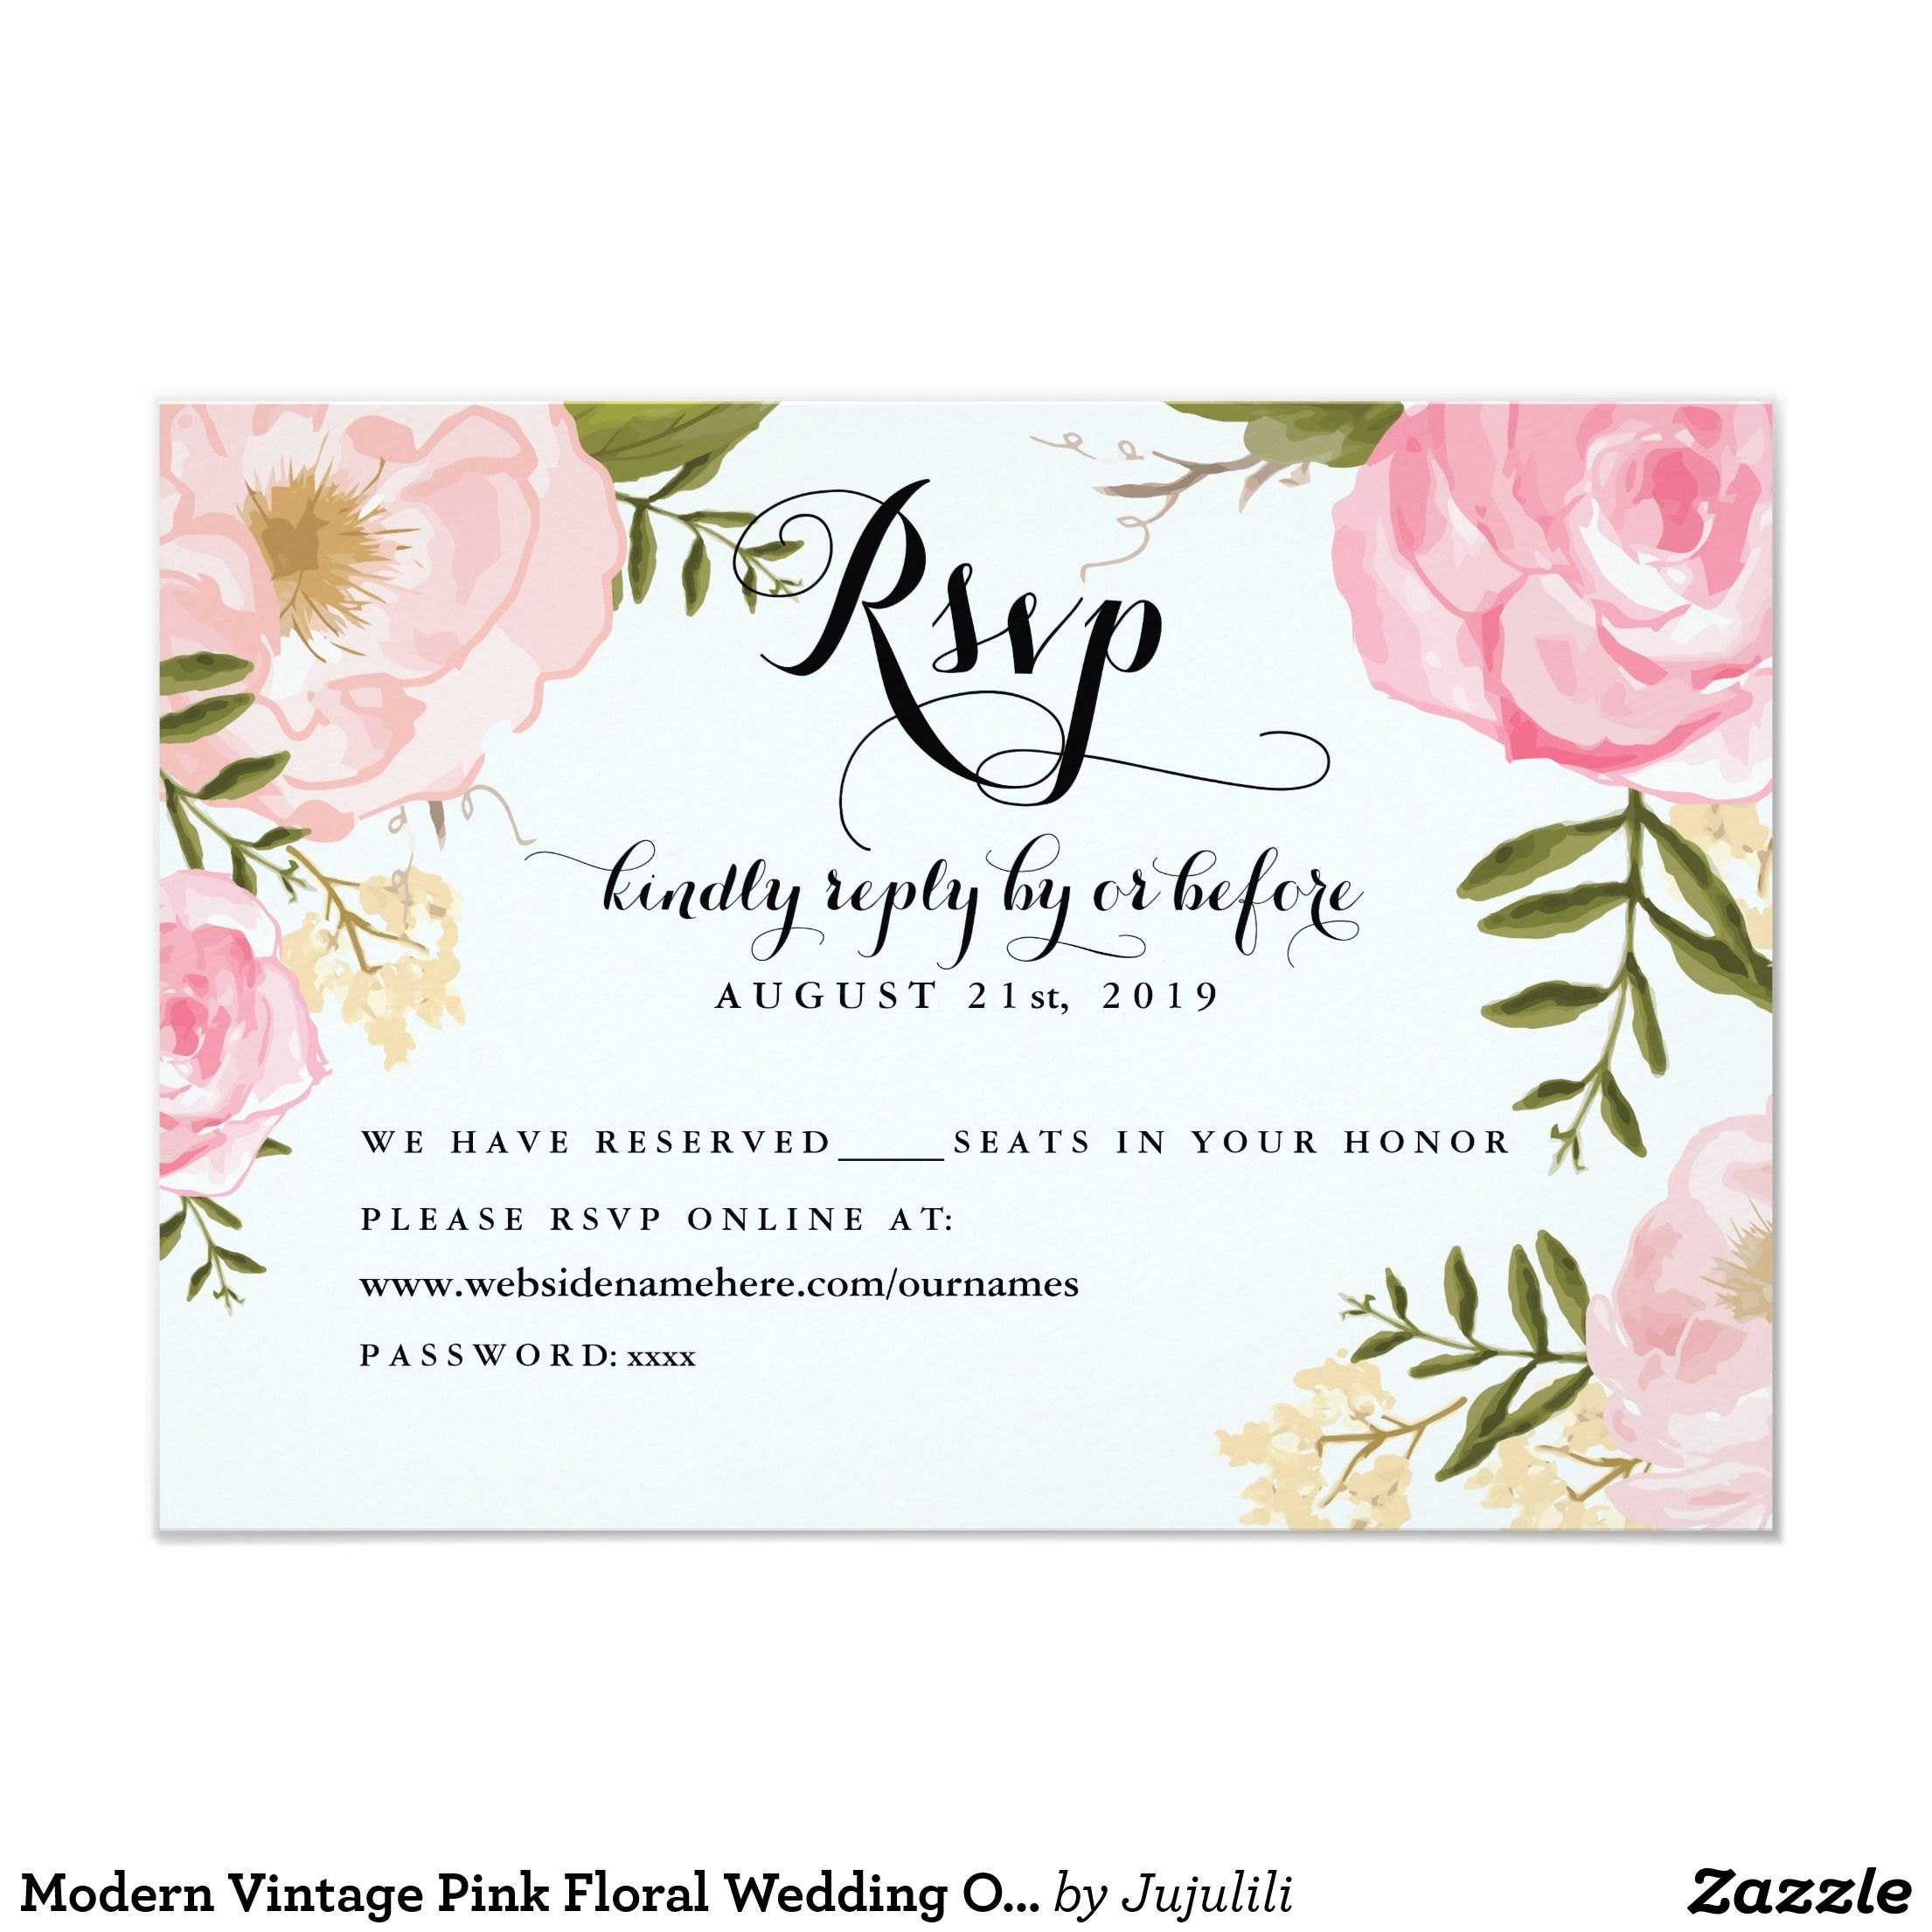 RSVP Card Wording Wedding invitation wording, Wedding